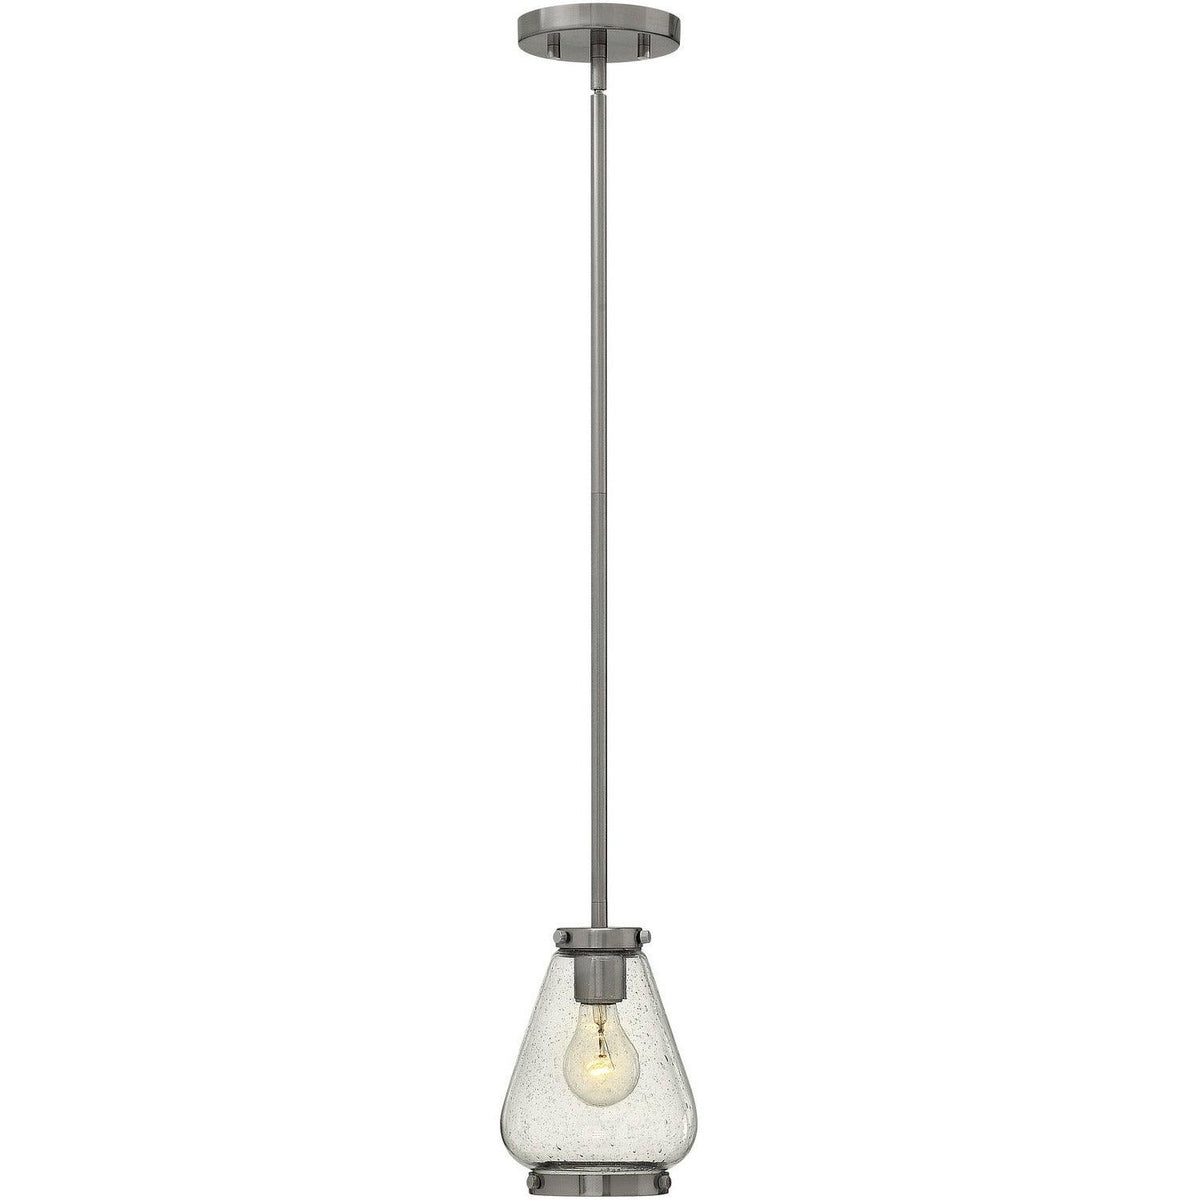 Hinkley Canada - 3687BN - One Light Pendant - Finley - Brushed Nickel